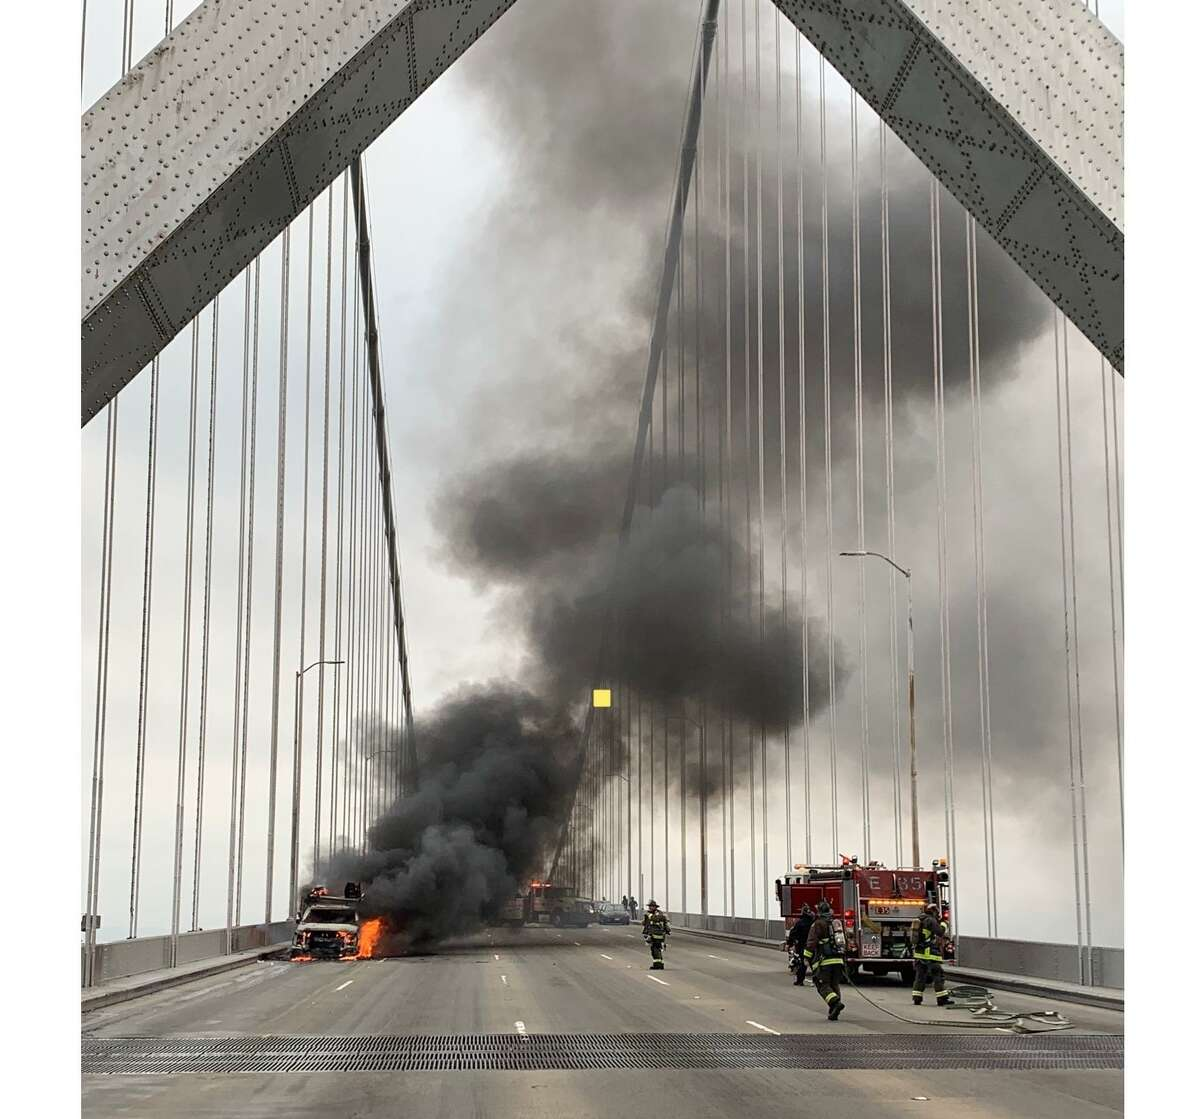 A truck fire on the Bay Bridge is blocking traffic and causing severe delays.